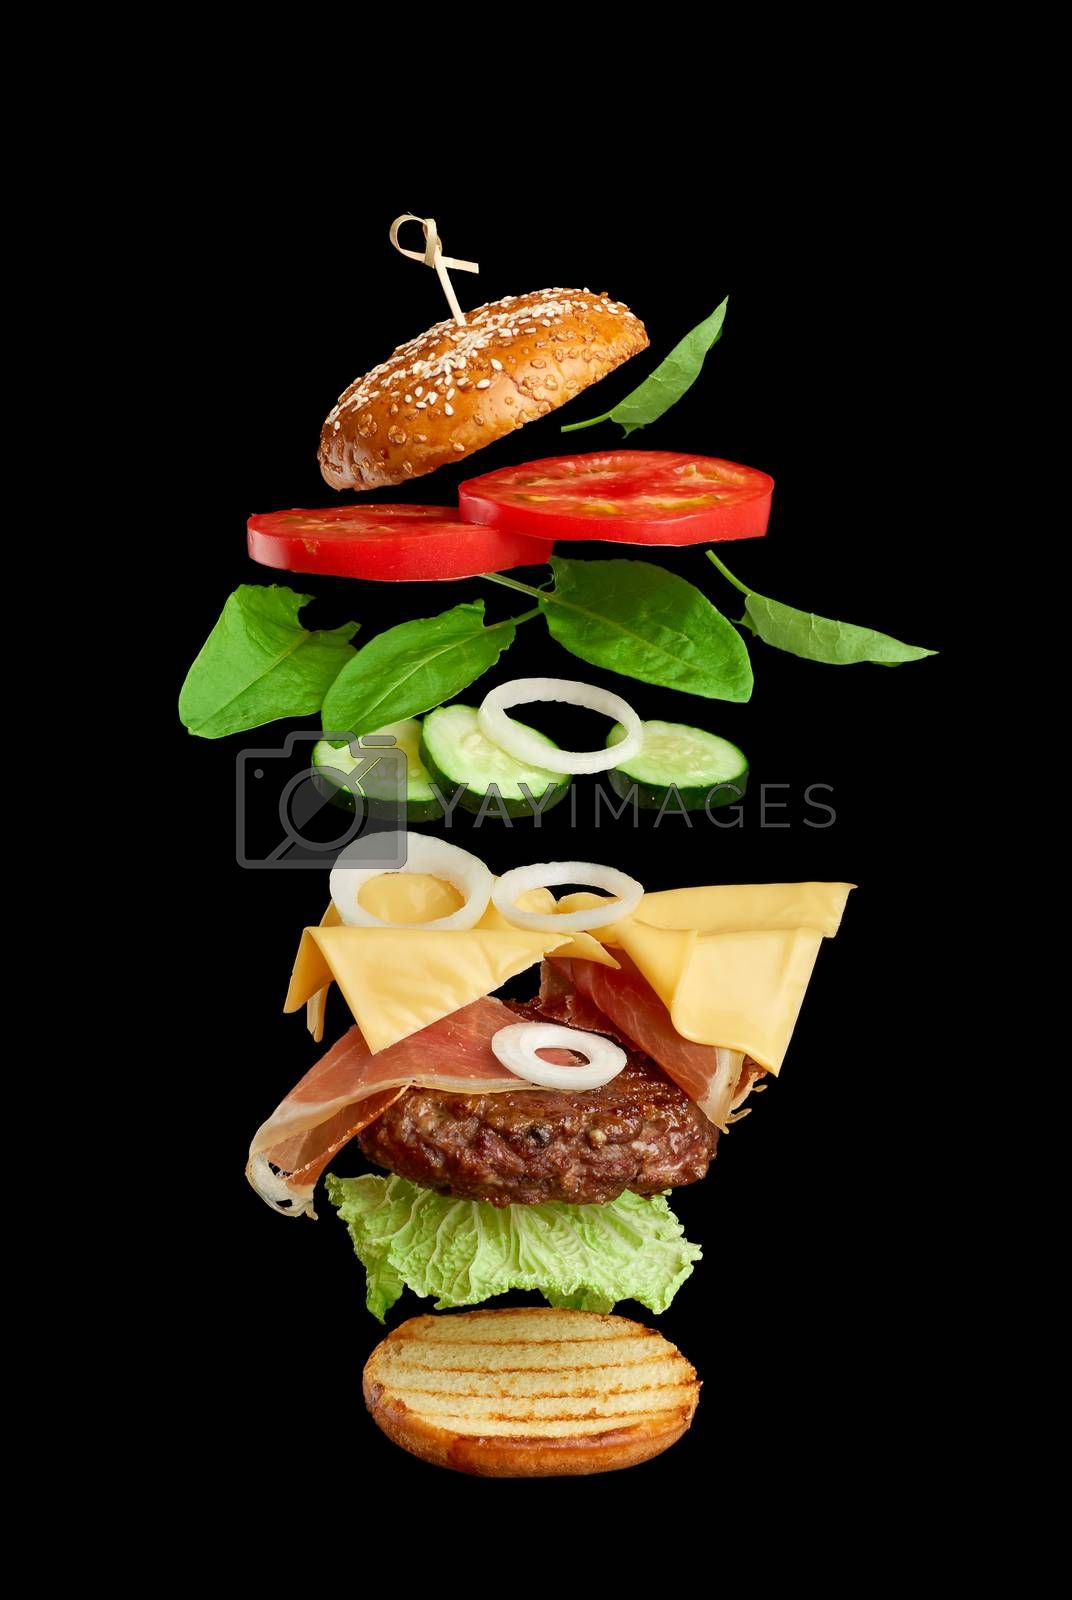 flying burger ingredients: cutlet, sesame seed bun, tomato, onion, green lettuce, cheese on black background, delicious cheeseburger, sandwich layers